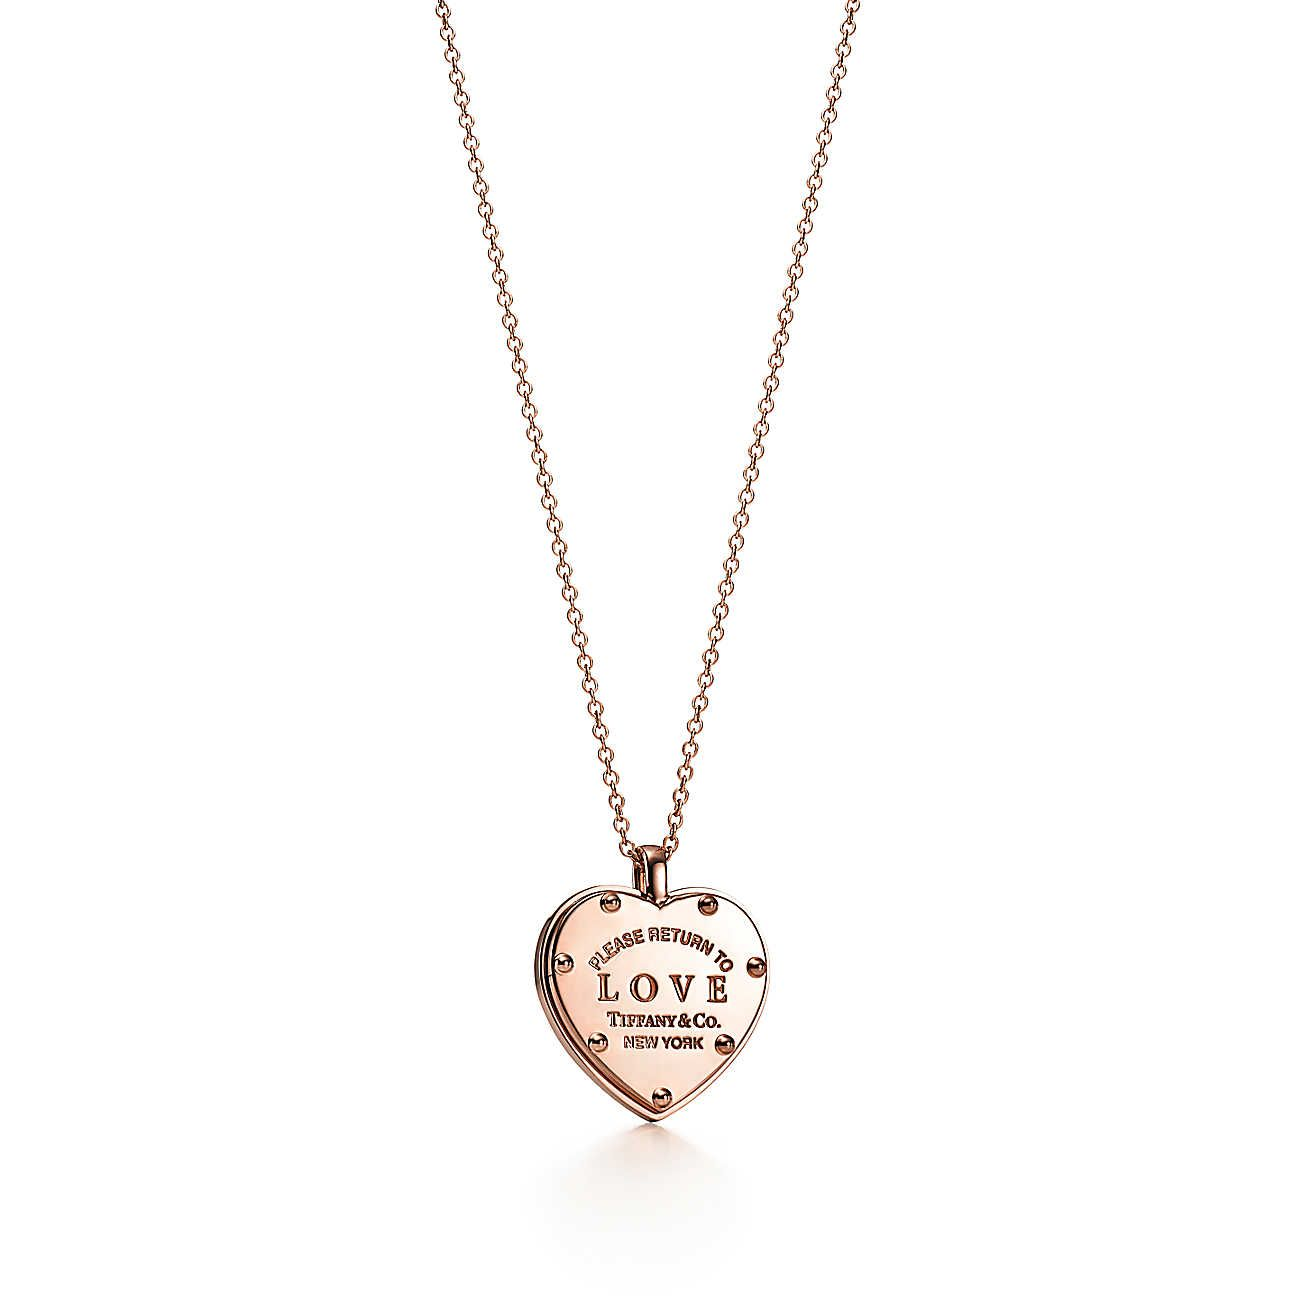 c64492e0c3 Inspired by the iconic key ring first introduced in the Return to Tiffany collection  is a classic reinvented. The unexpected sliding design of this pendant ...